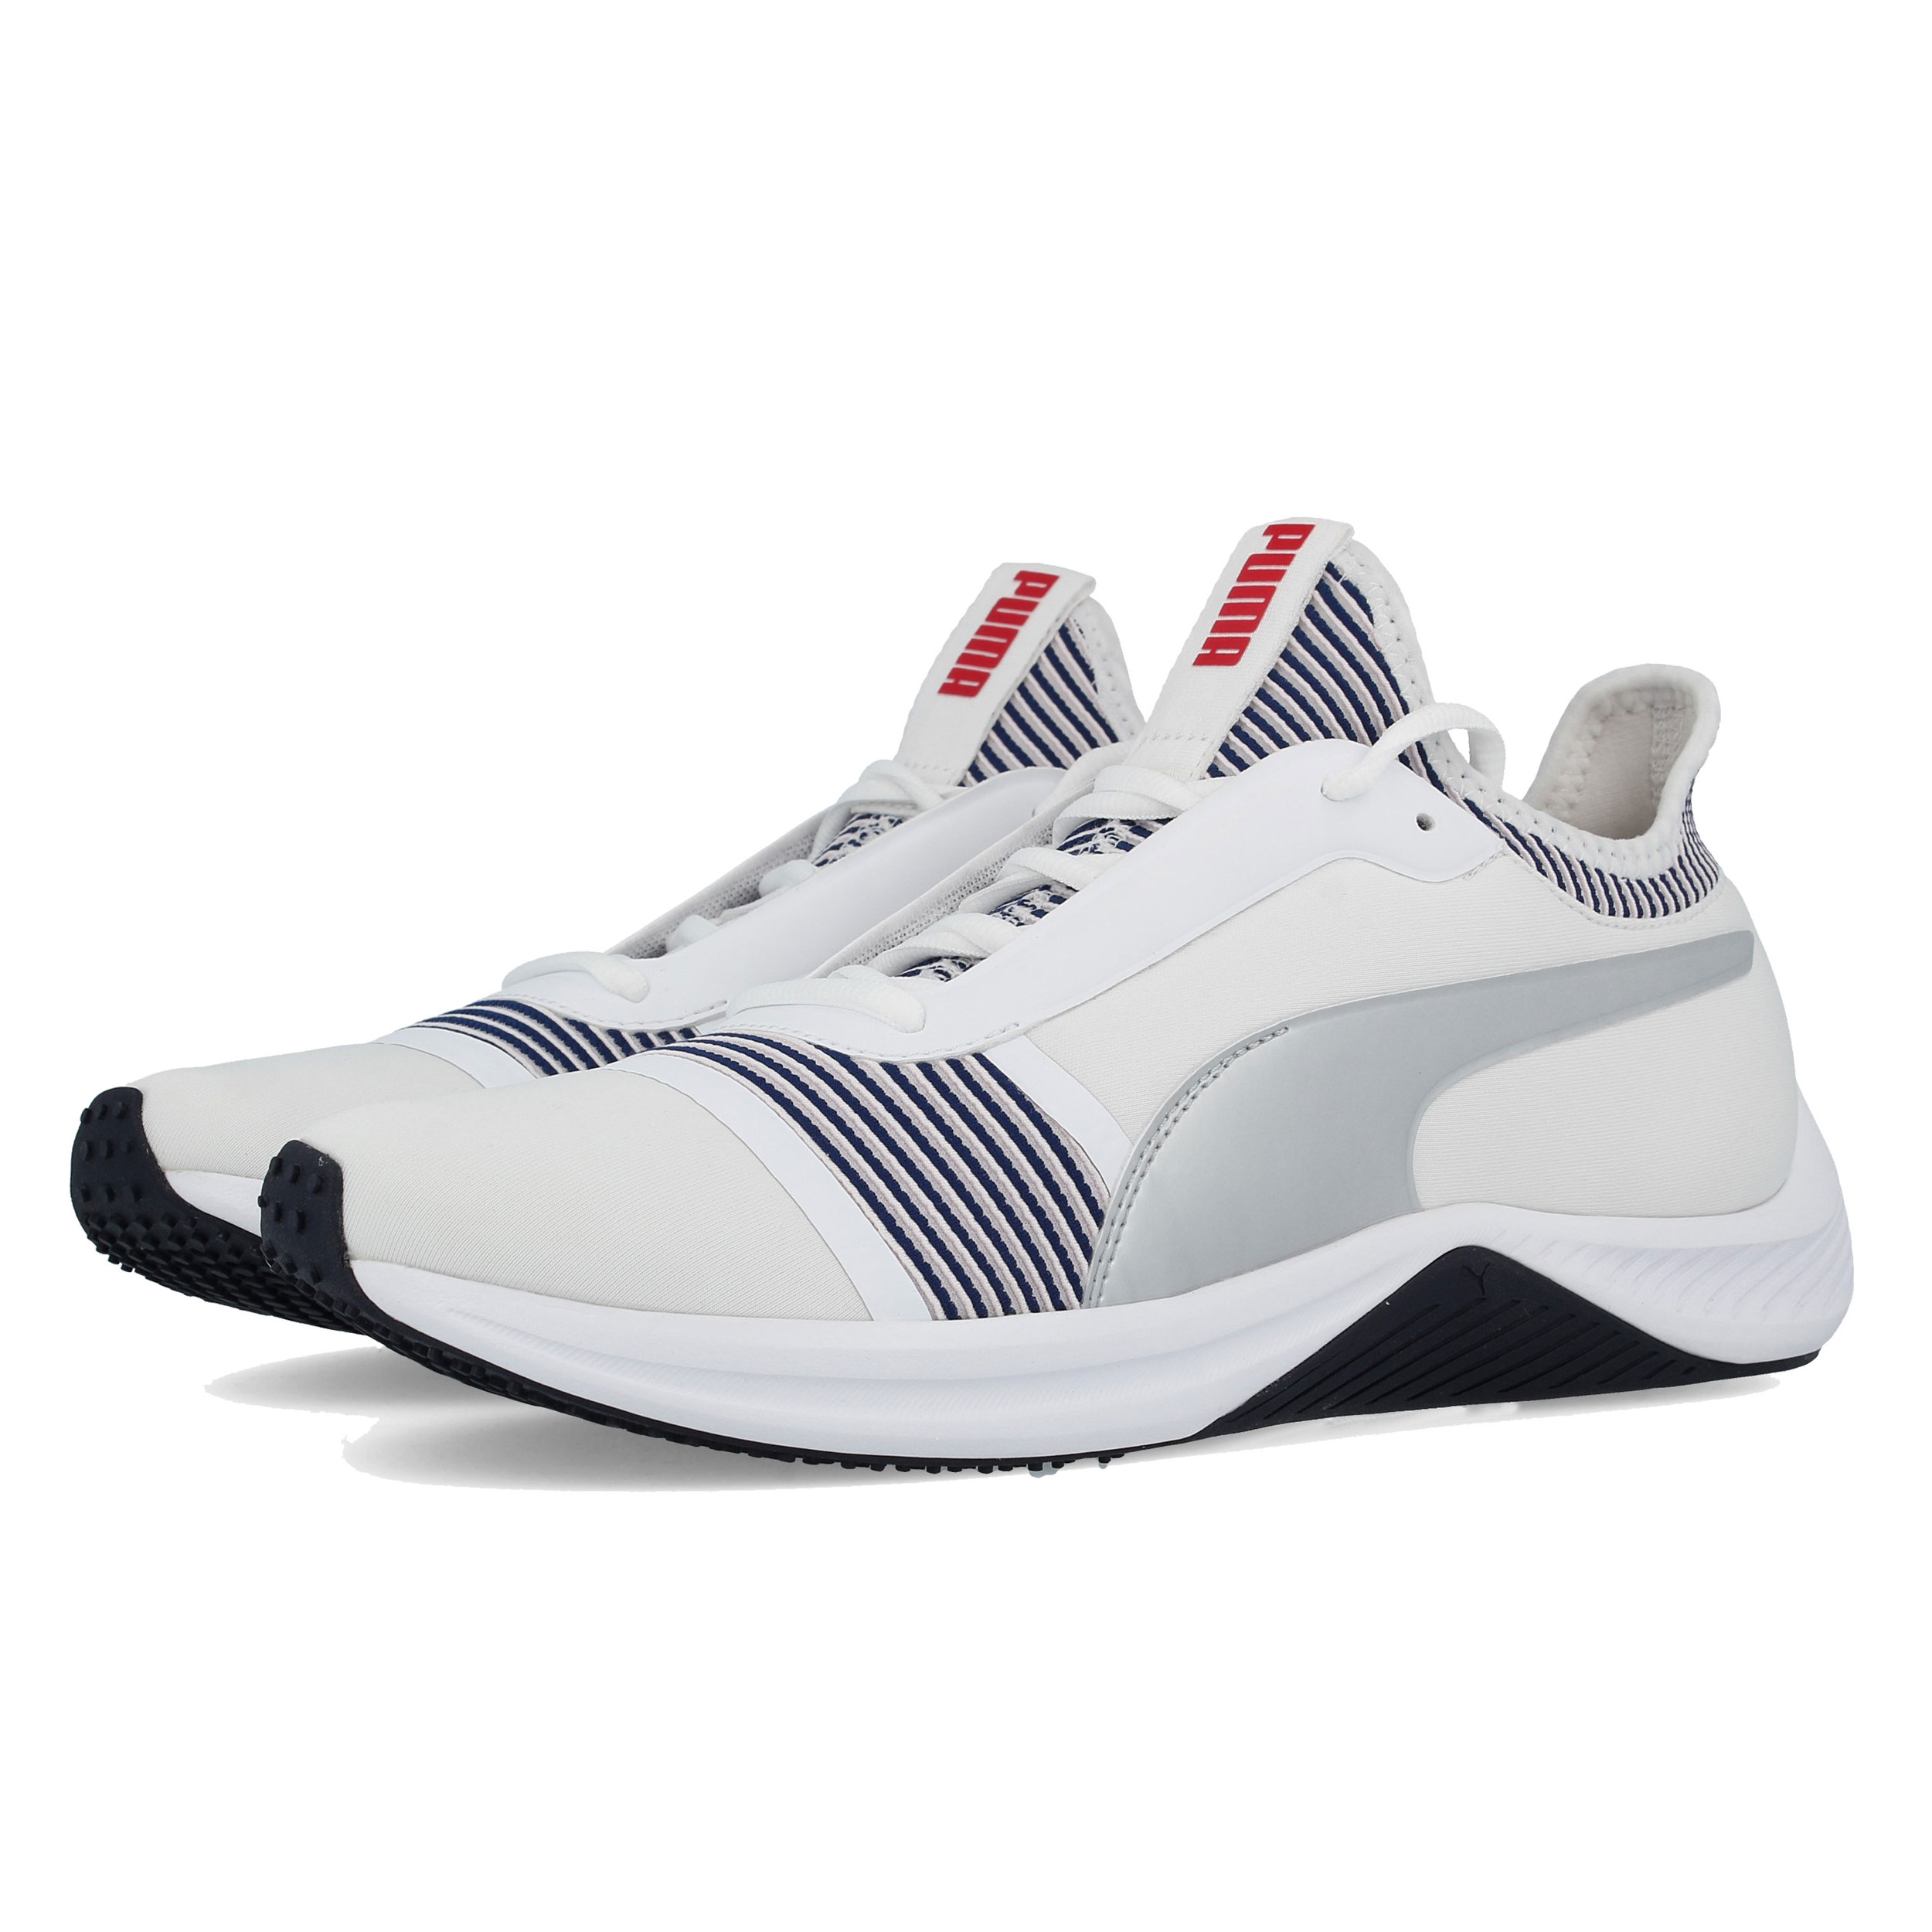 6e1f0a74942047 Details about Puma Womens Amp XT Fitness Shoes White Sports Gym Lightweight  Trainers